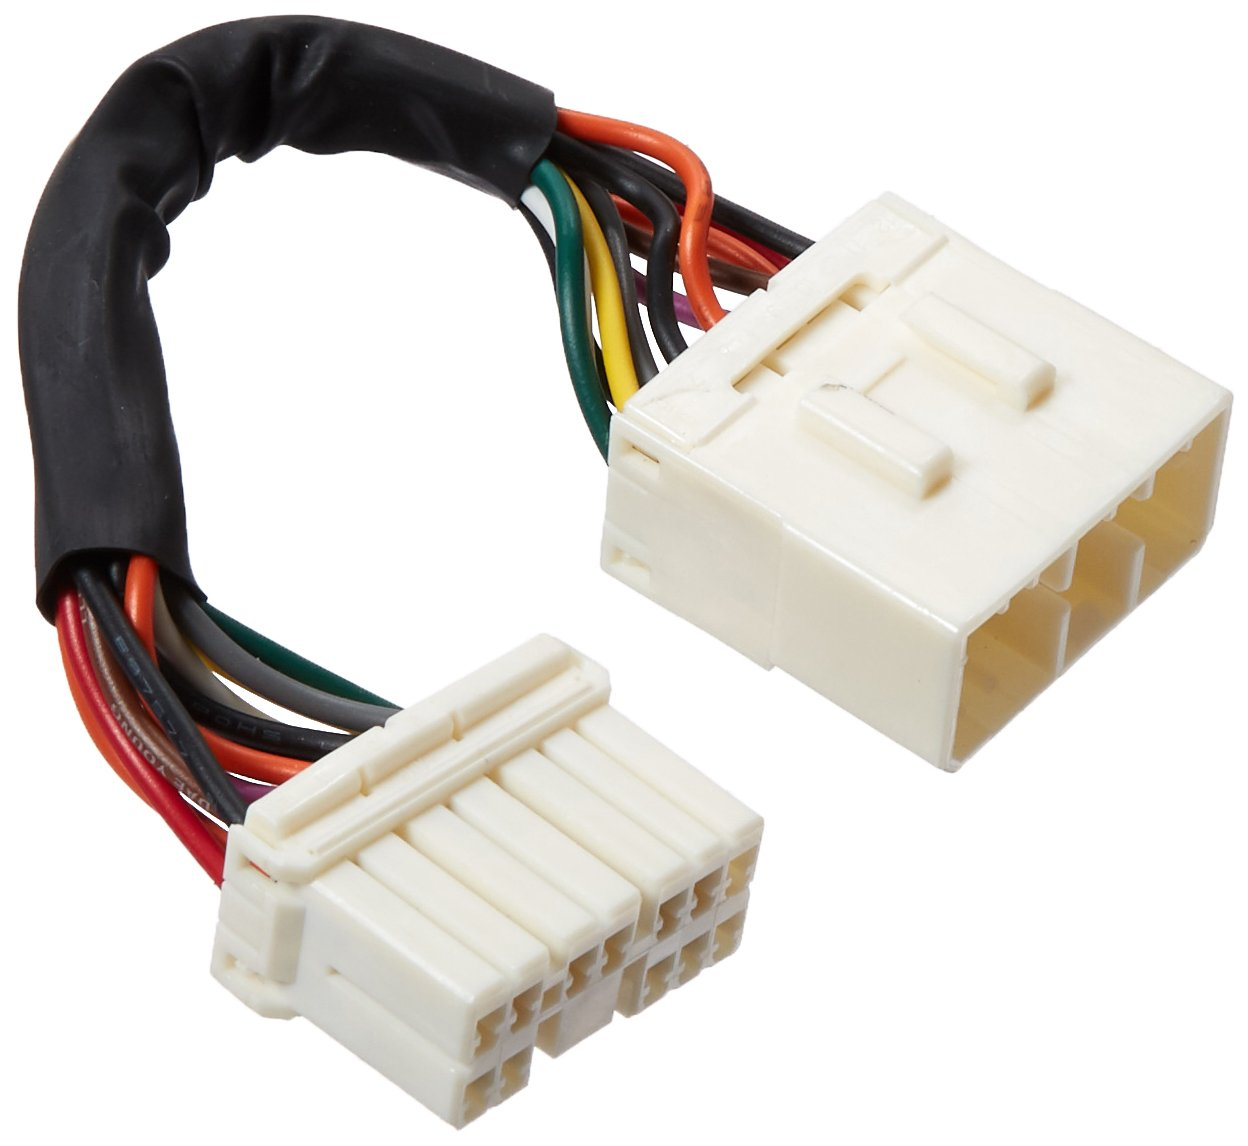 61o9TctSTfL._SL1248_ amazon com kuryakyn 5496 total control passing lamp harness Wiring Kits for Lights at bayanpartner.co